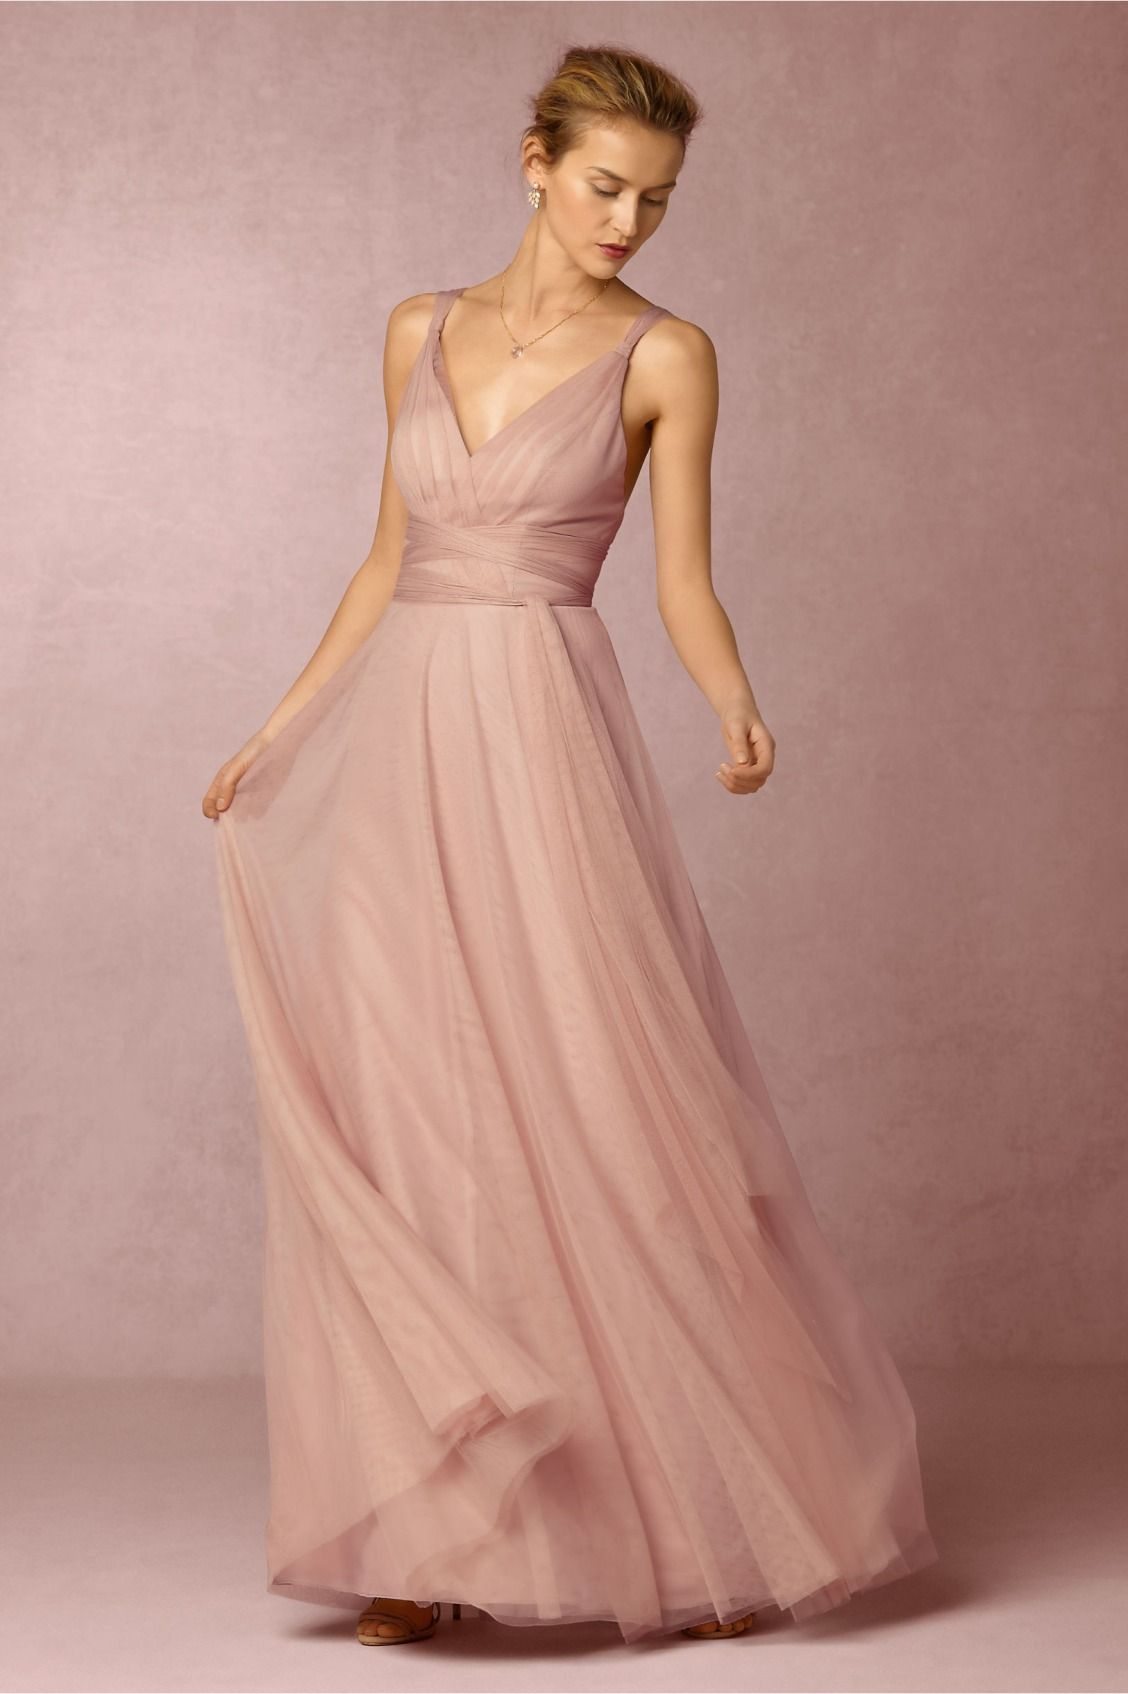 convertible dream dress  1a1fdfcb0e2c